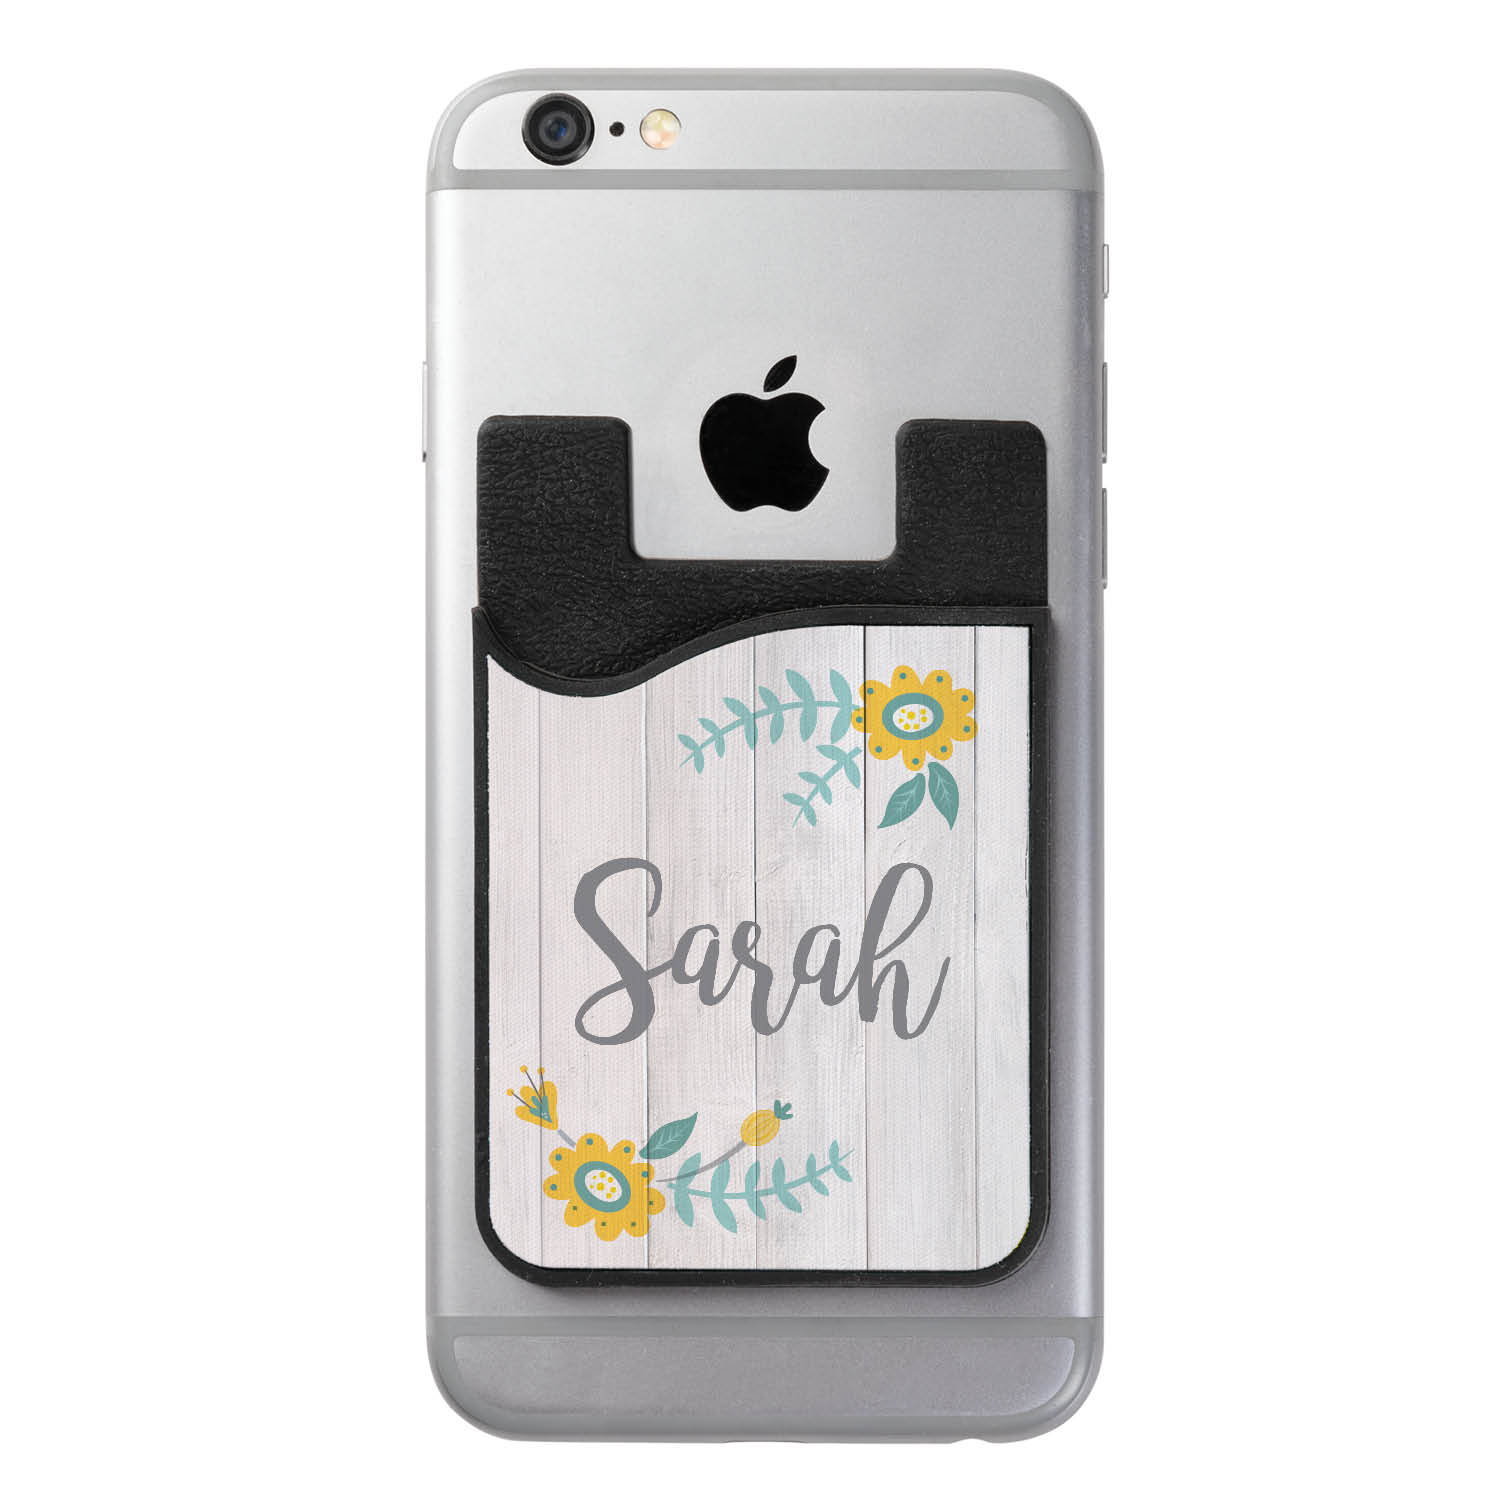 Her Name Personalized Phone Card Wallet Caddy